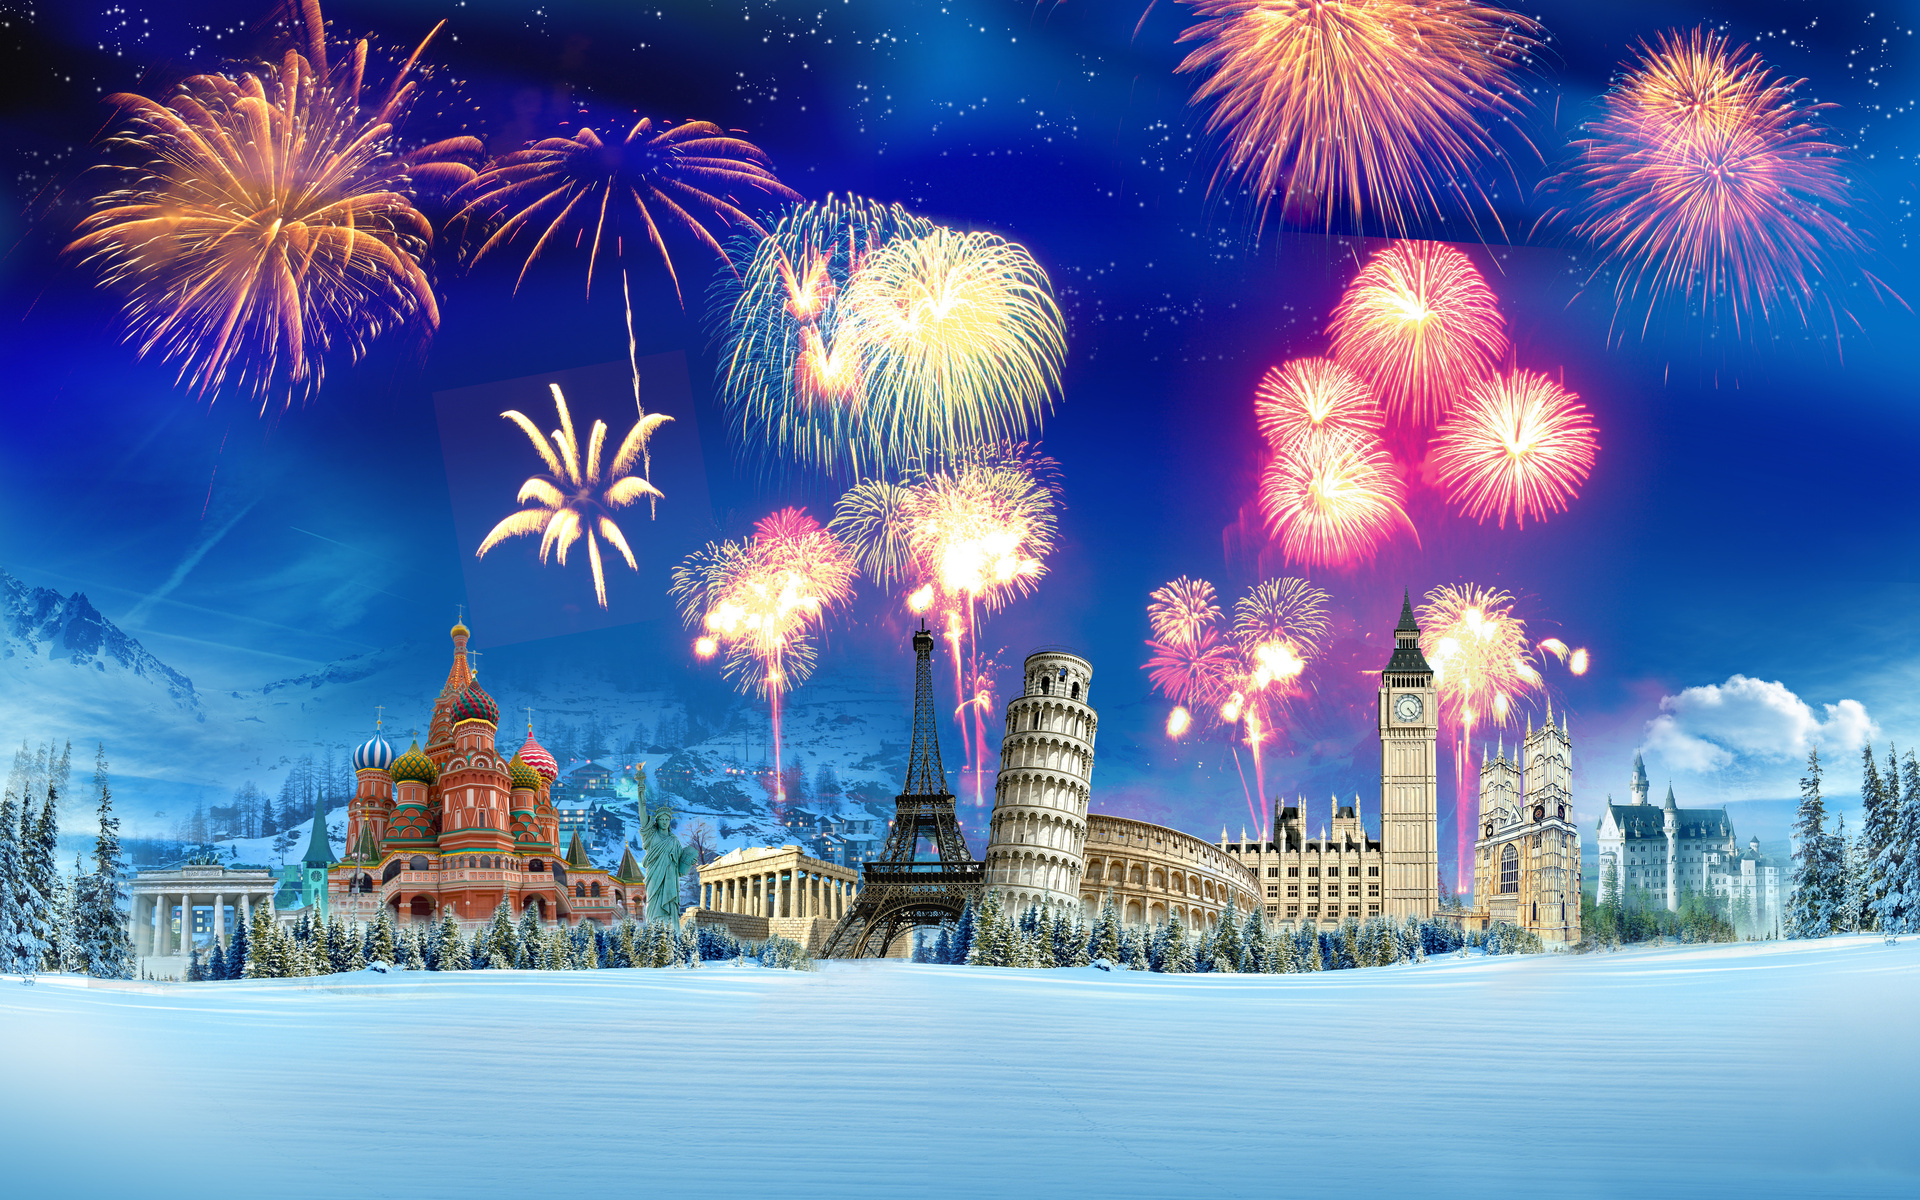 New Years Eve Free Wallpaper - Wallpaper, High Definition, High ...